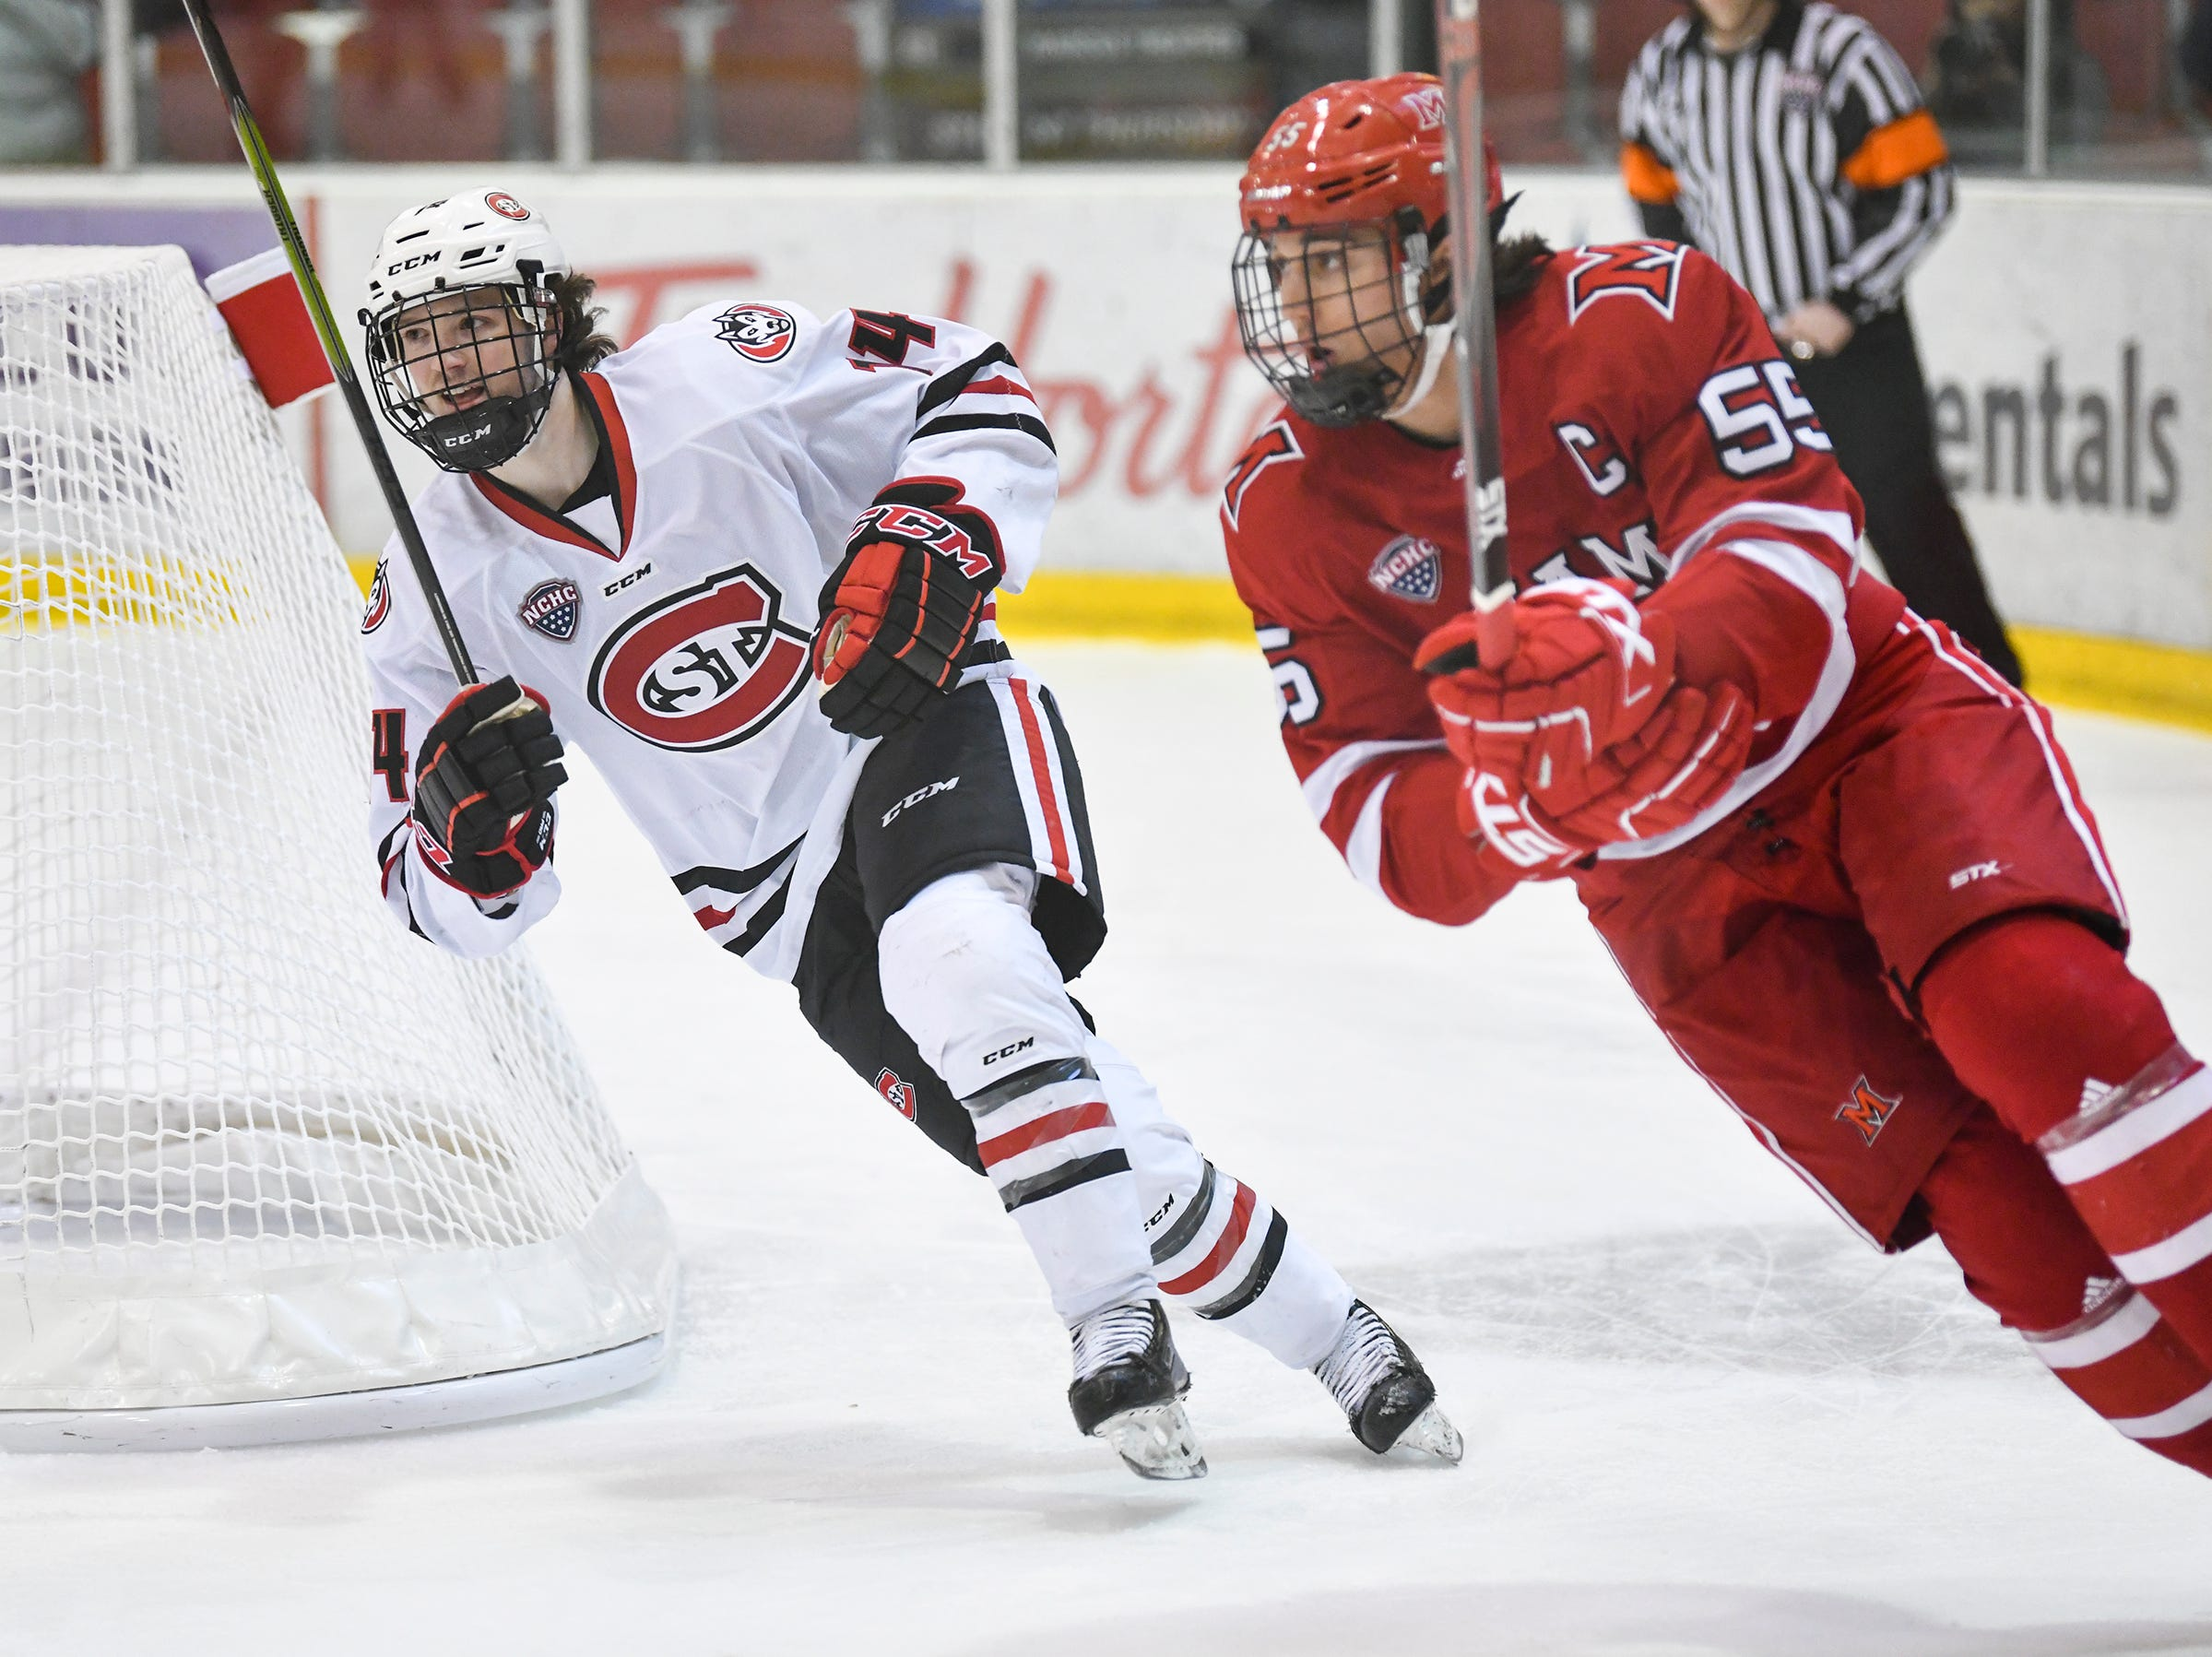 St. Cloud State's Patrick Newell skates behind the Miami goal during the first period of the Saturday, March 16 game at the Herb Brooks National Hockey Center in St. Cloud.